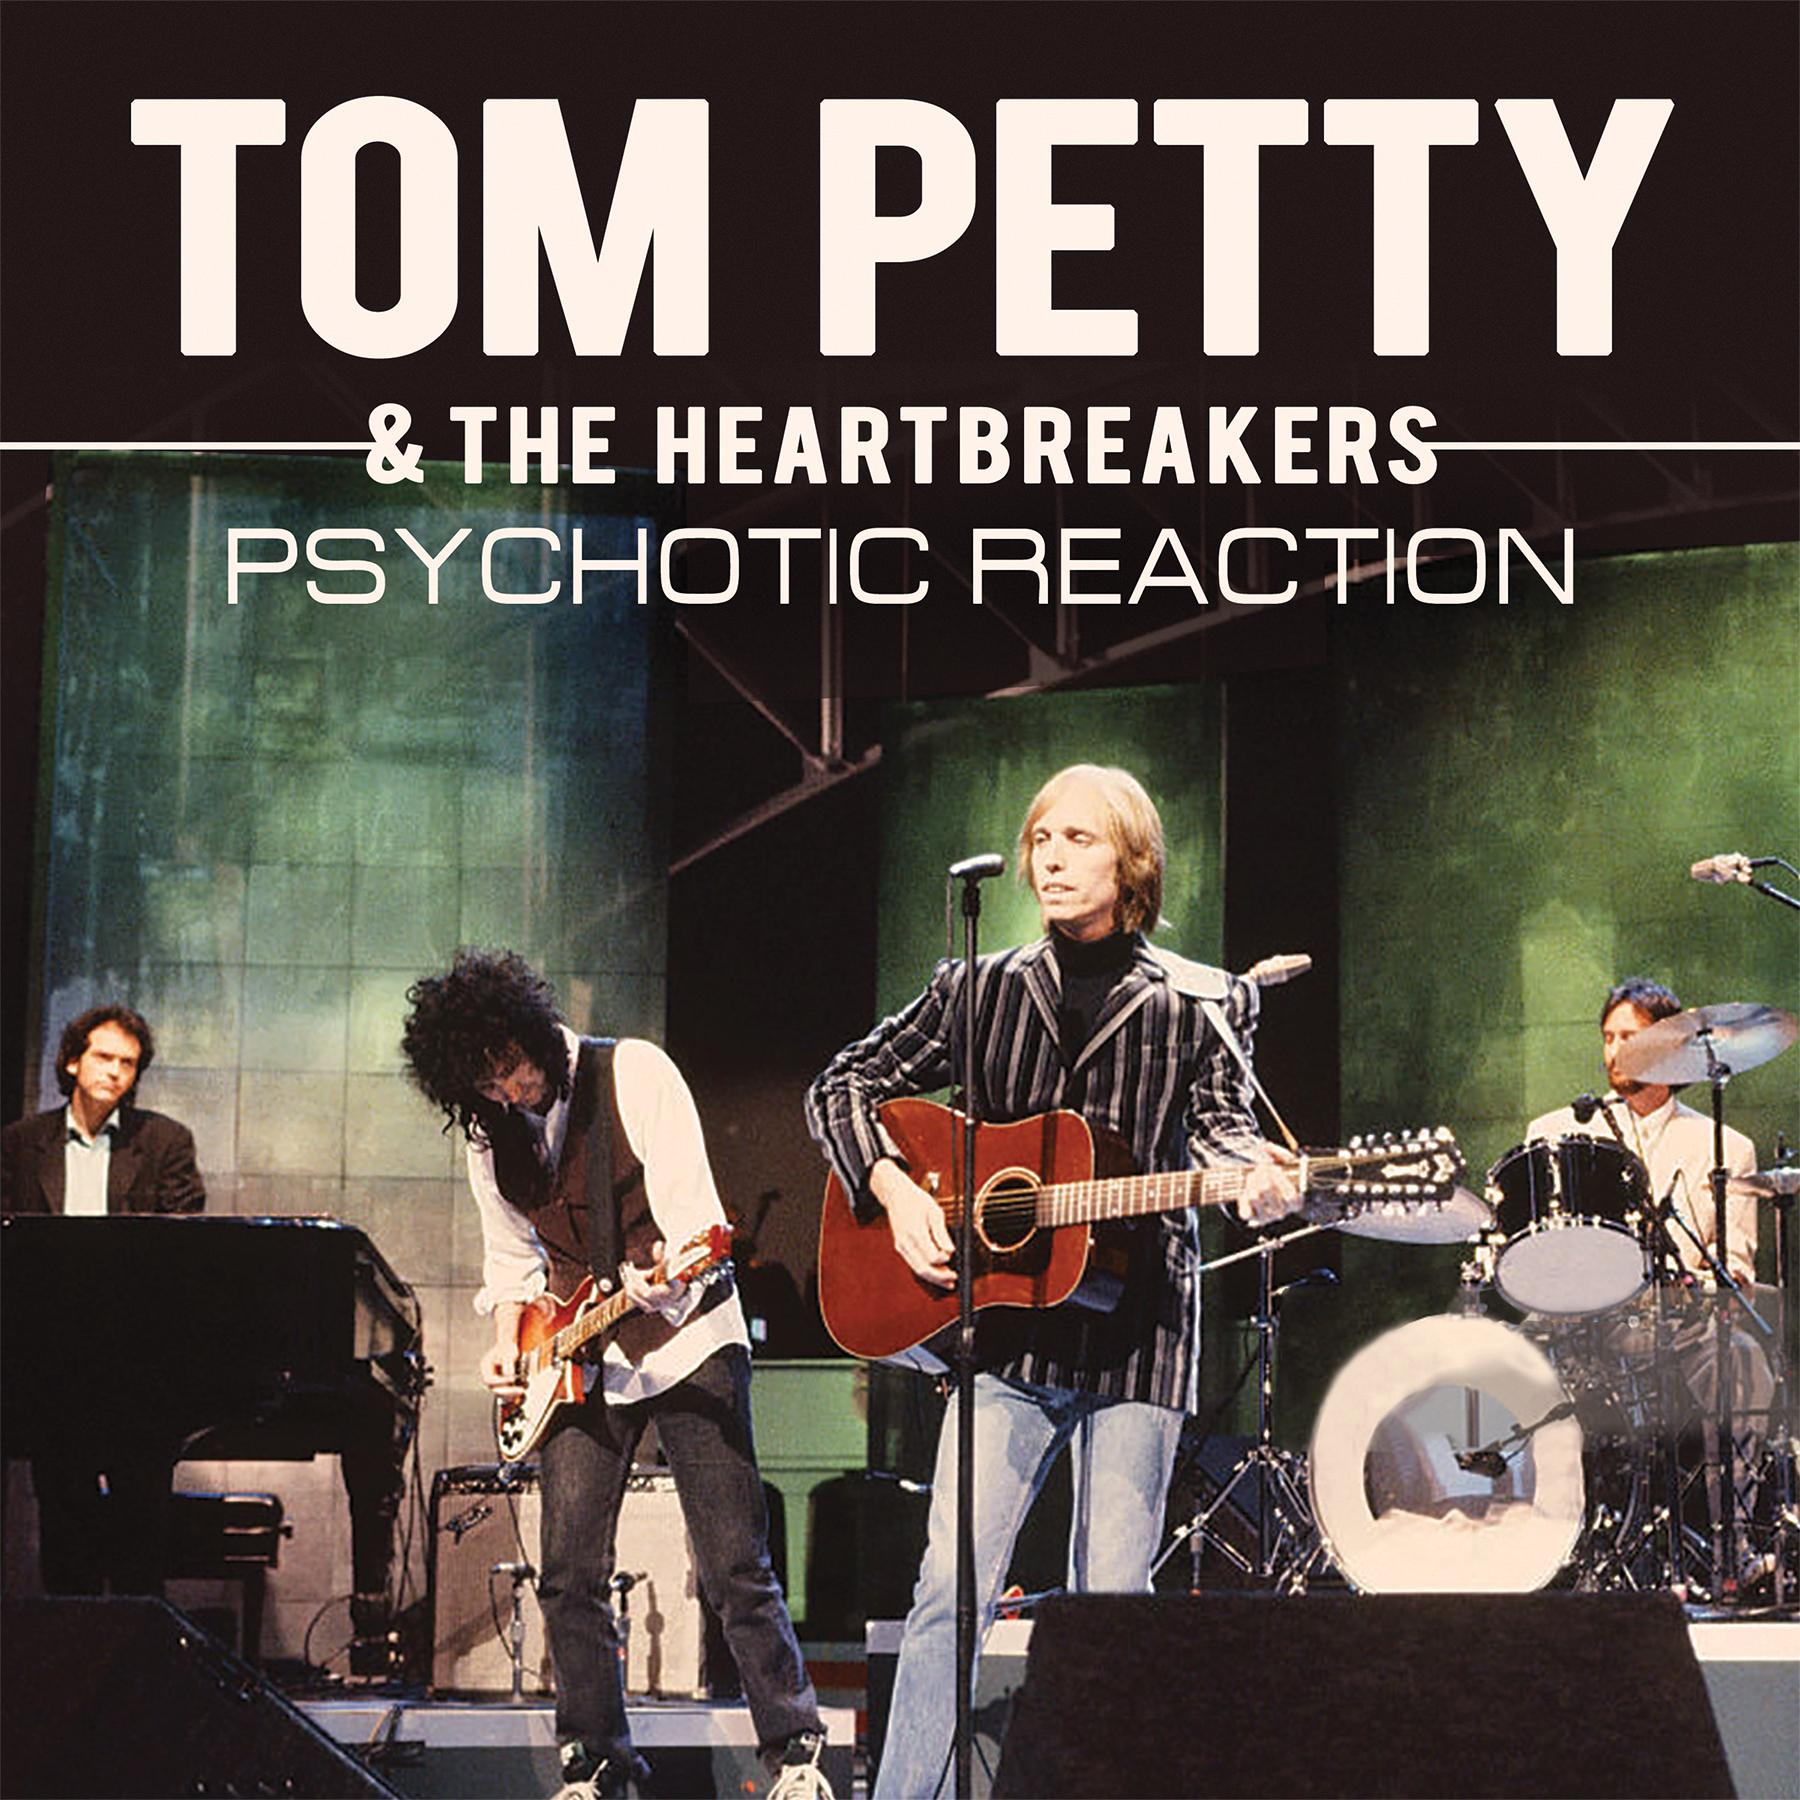 tom petty the heartbreakers psychotic reaction classic 1991 broadcast cd leeway 39 s home. Black Bedroom Furniture Sets. Home Design Ideas